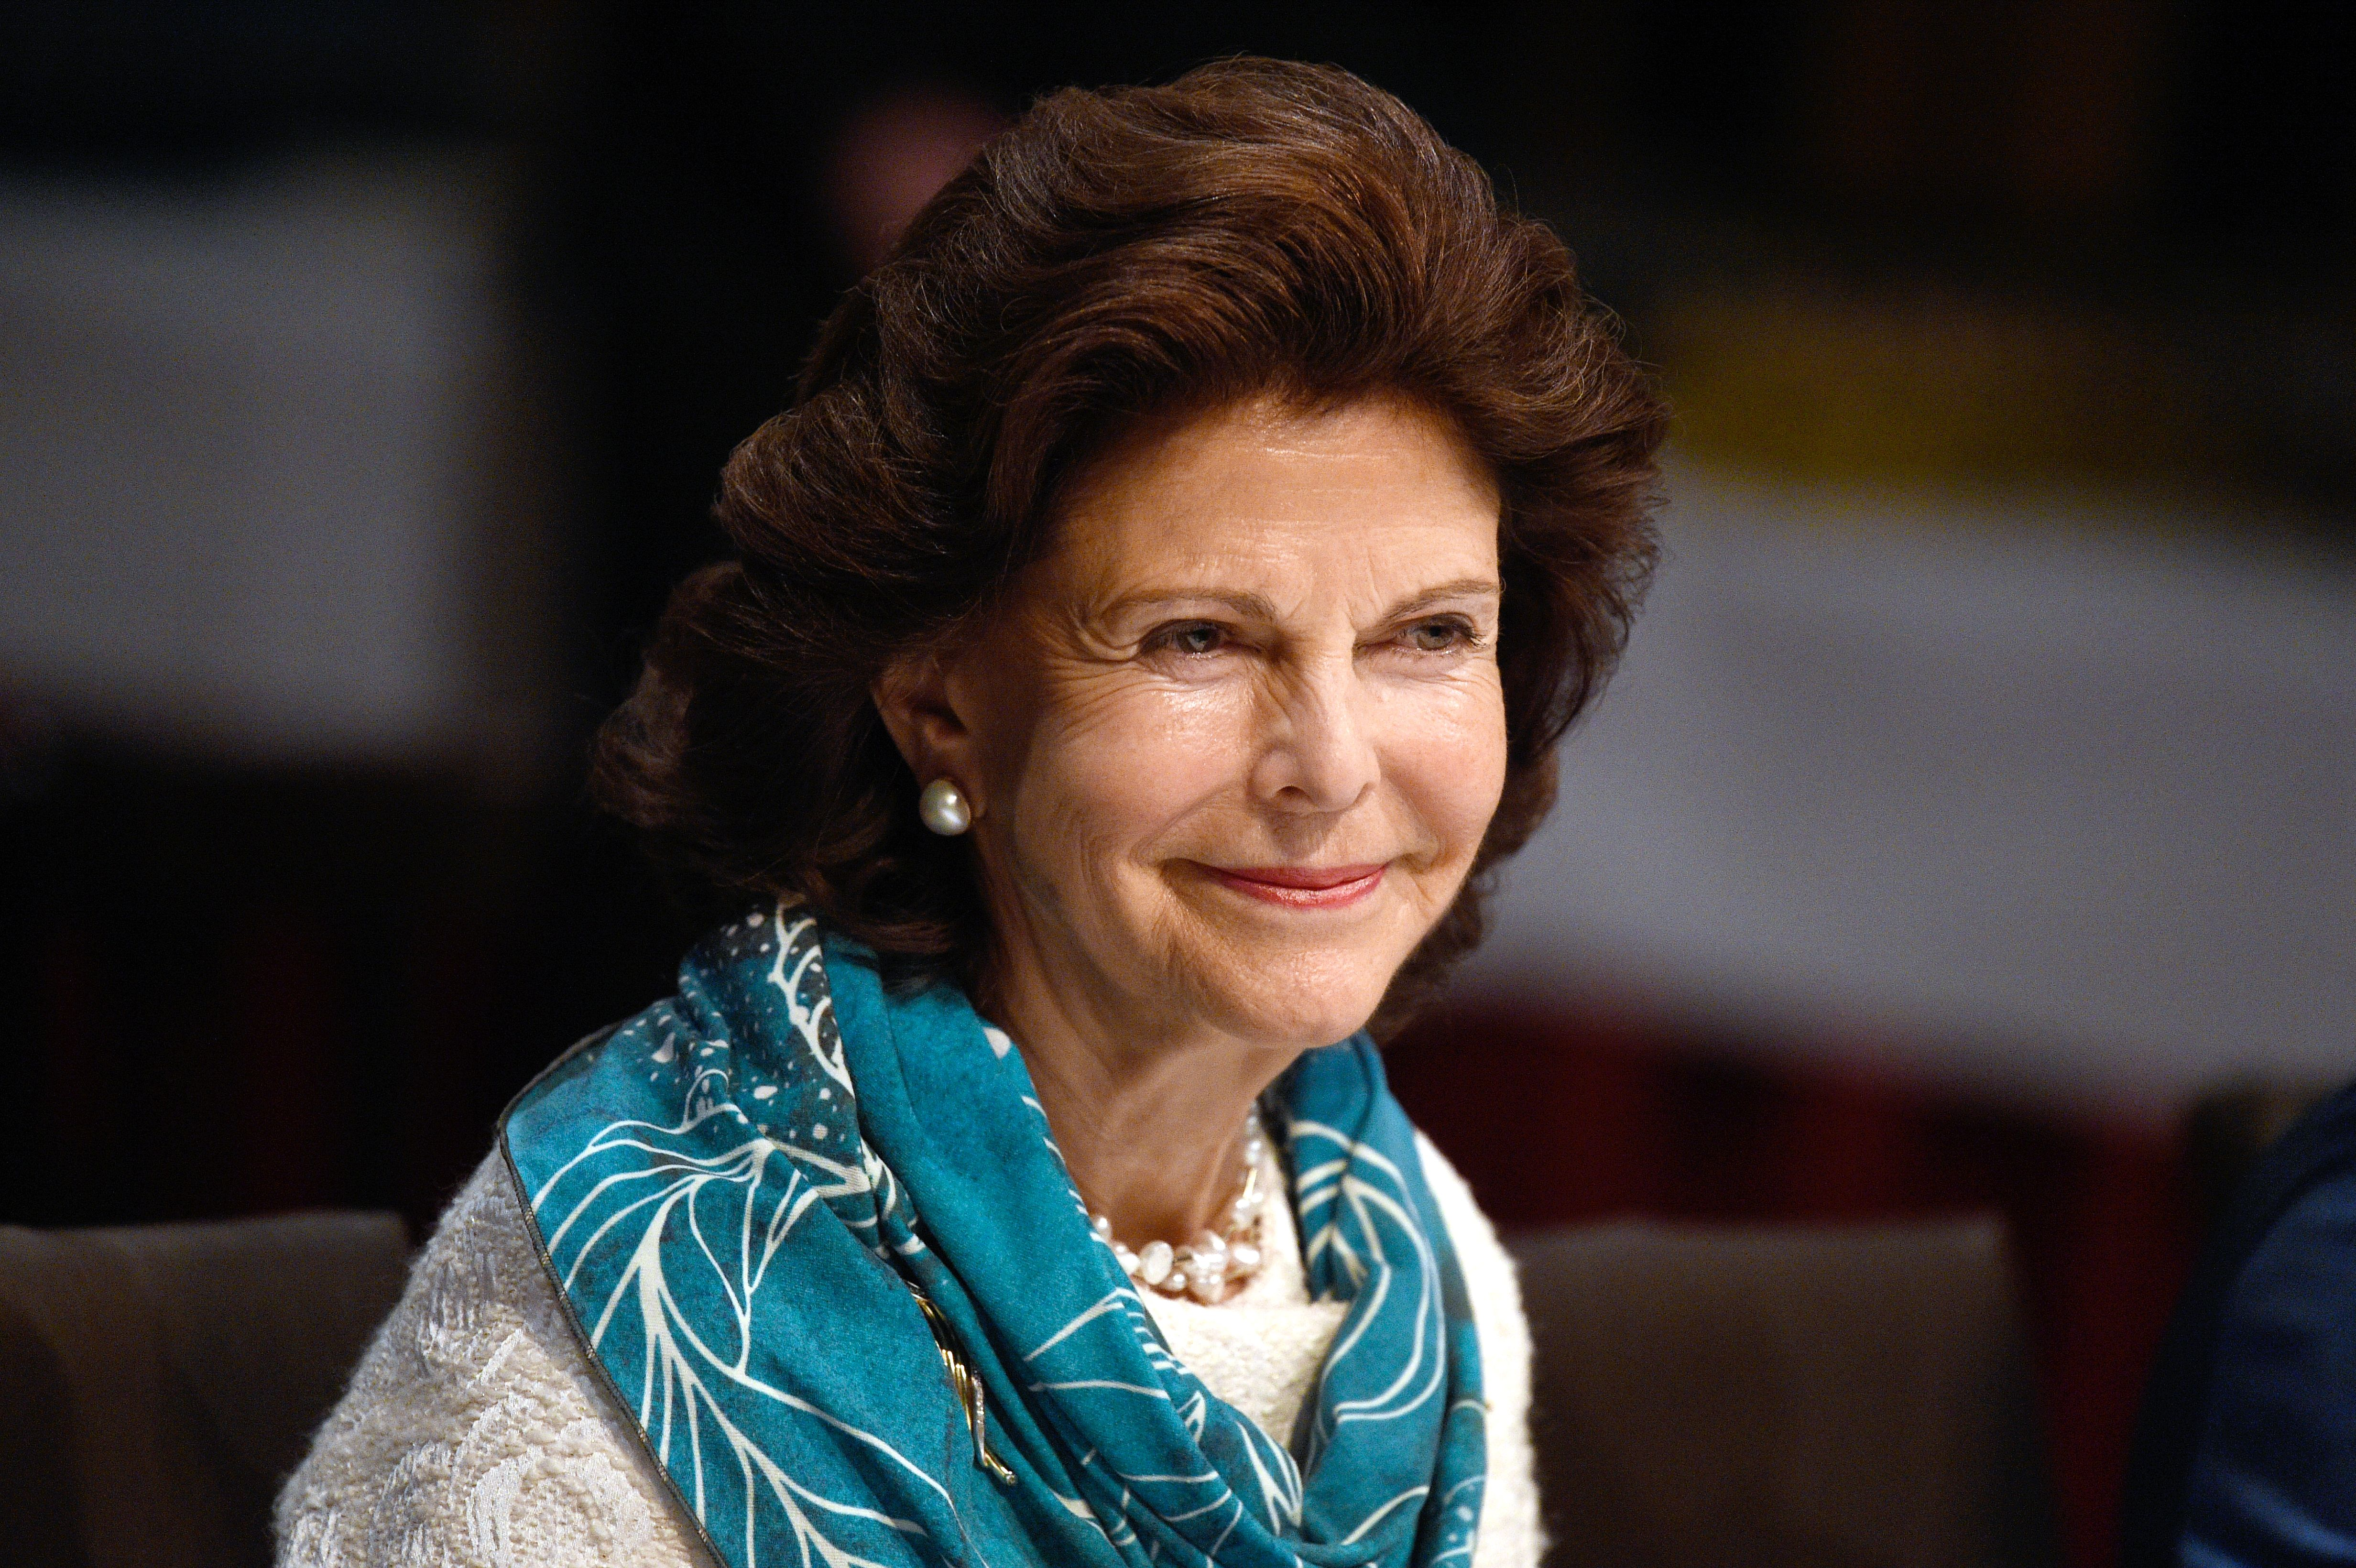 Queen Silvia of Sweden at the Chamaeleon Theatre in Berlin on Oct. 7, 2016.